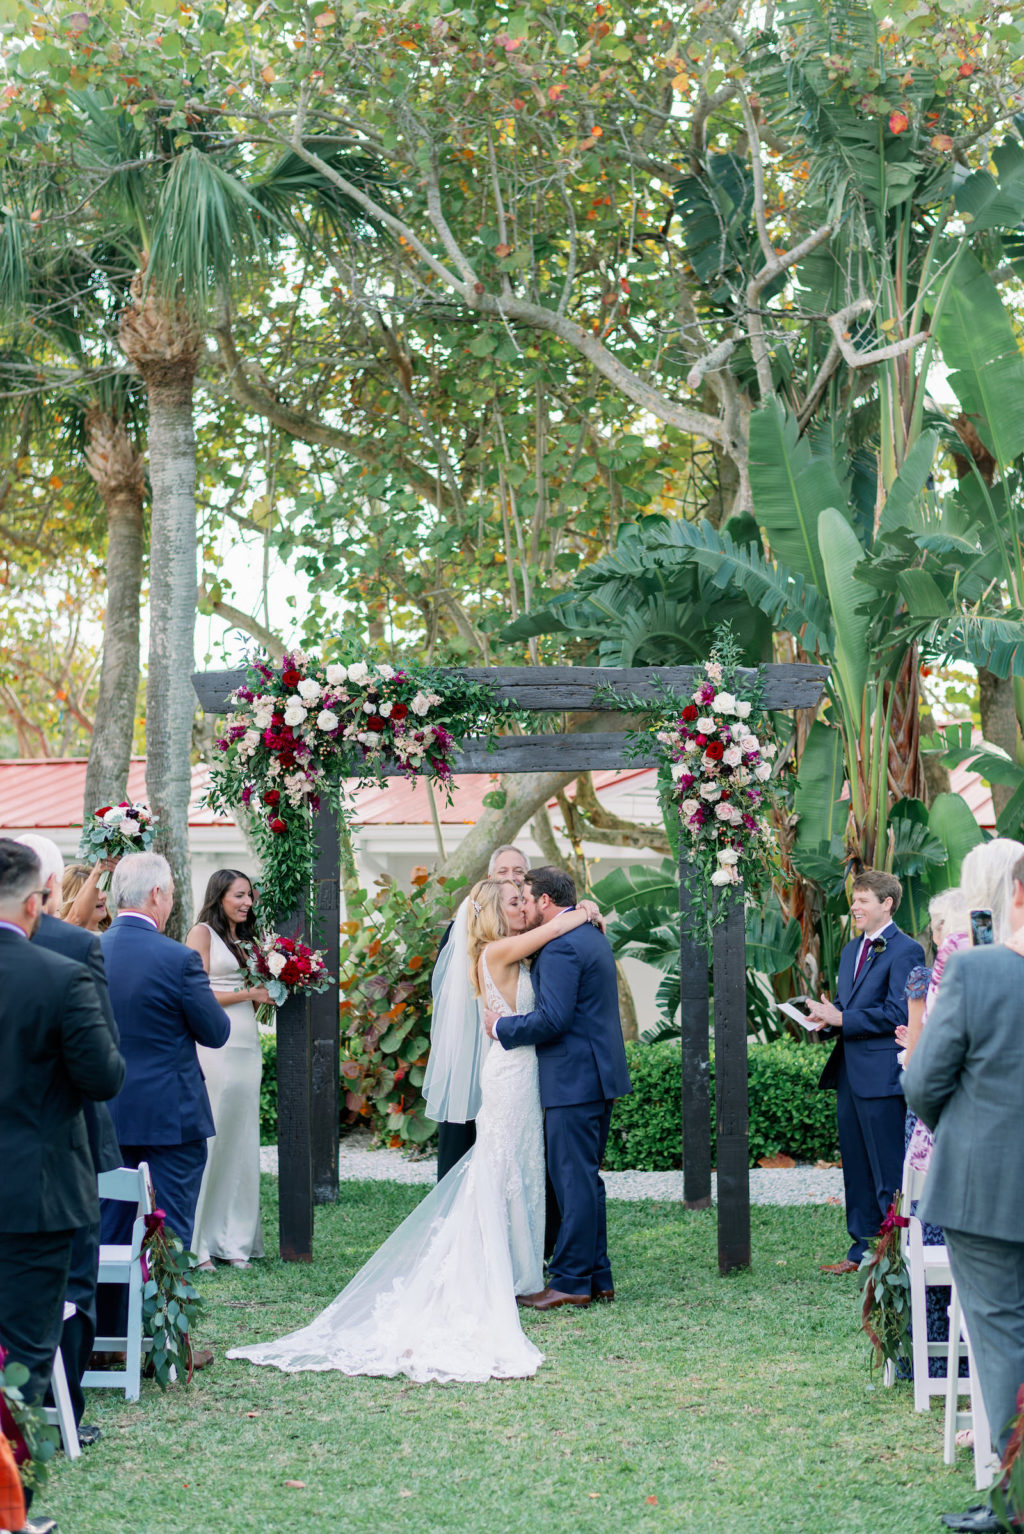 Tampa Bay Bride and Groom Exchanging Wedding Vows During Ceremony   Clearwater Wedding Venue Carlouel Beach and Yacht Club